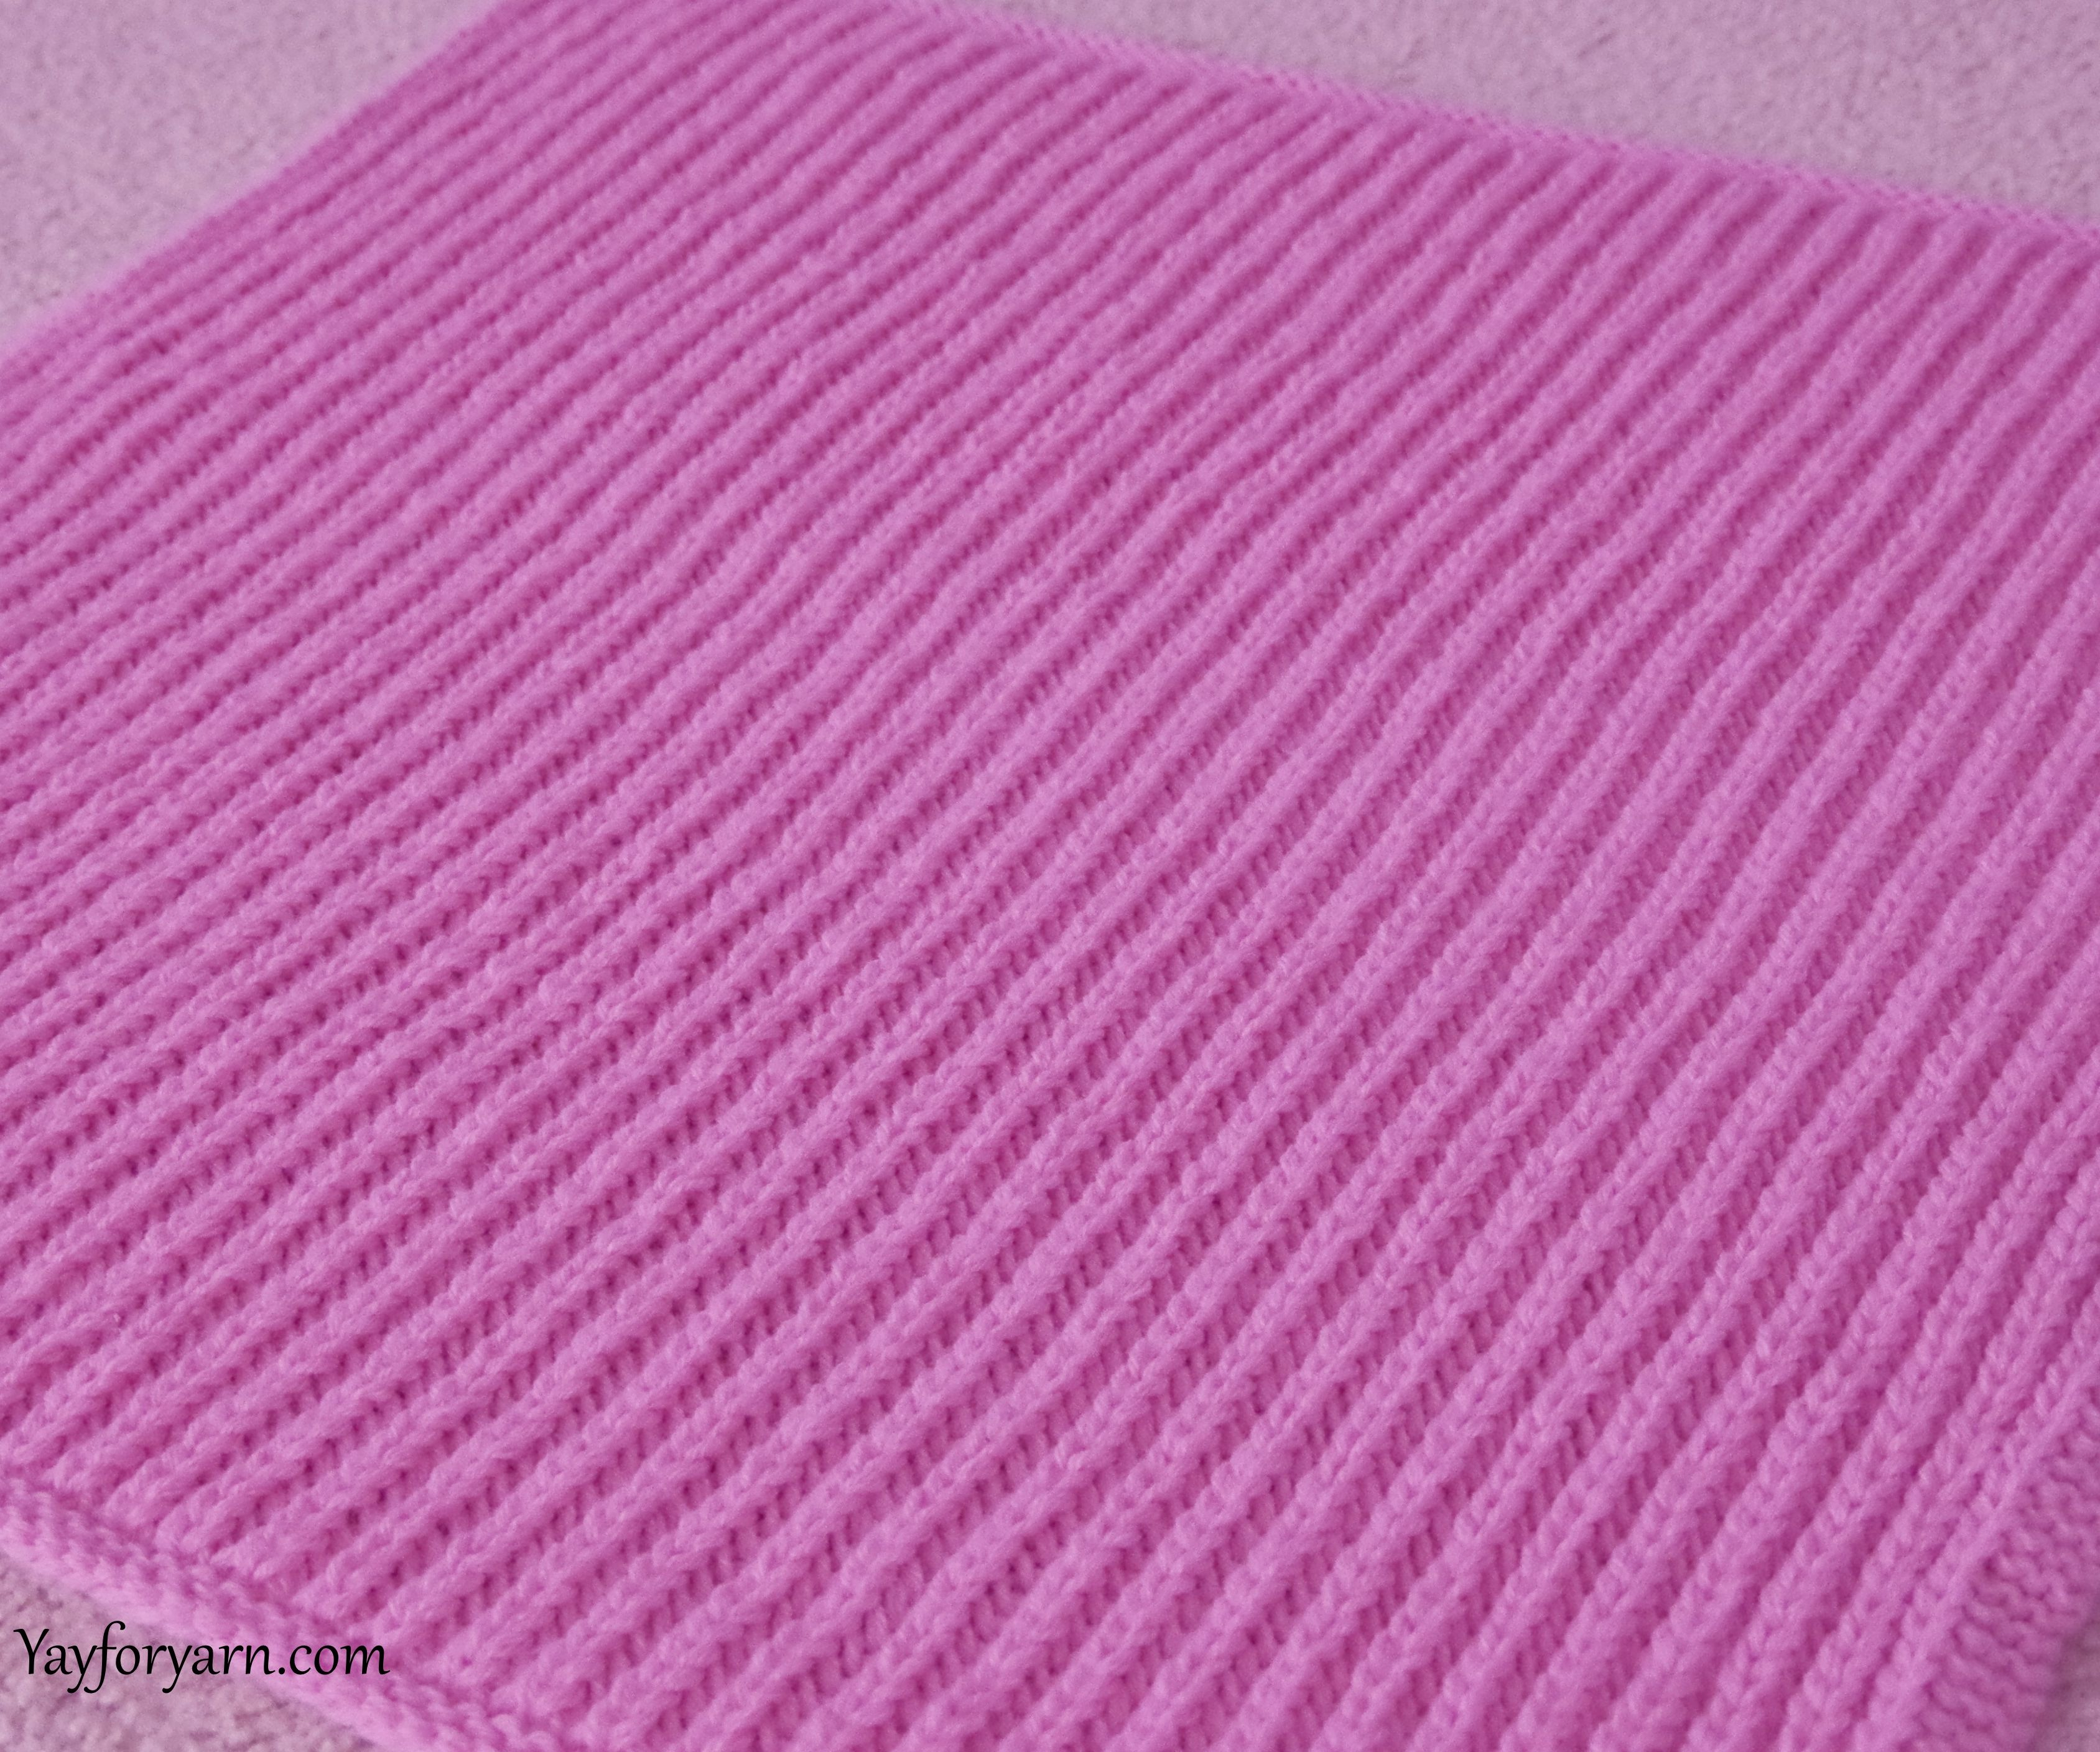 Super Easy Knit Baby Blanket Pattern Easy Shortcut Brioche Ba Blanket 6 Steps With Pictures